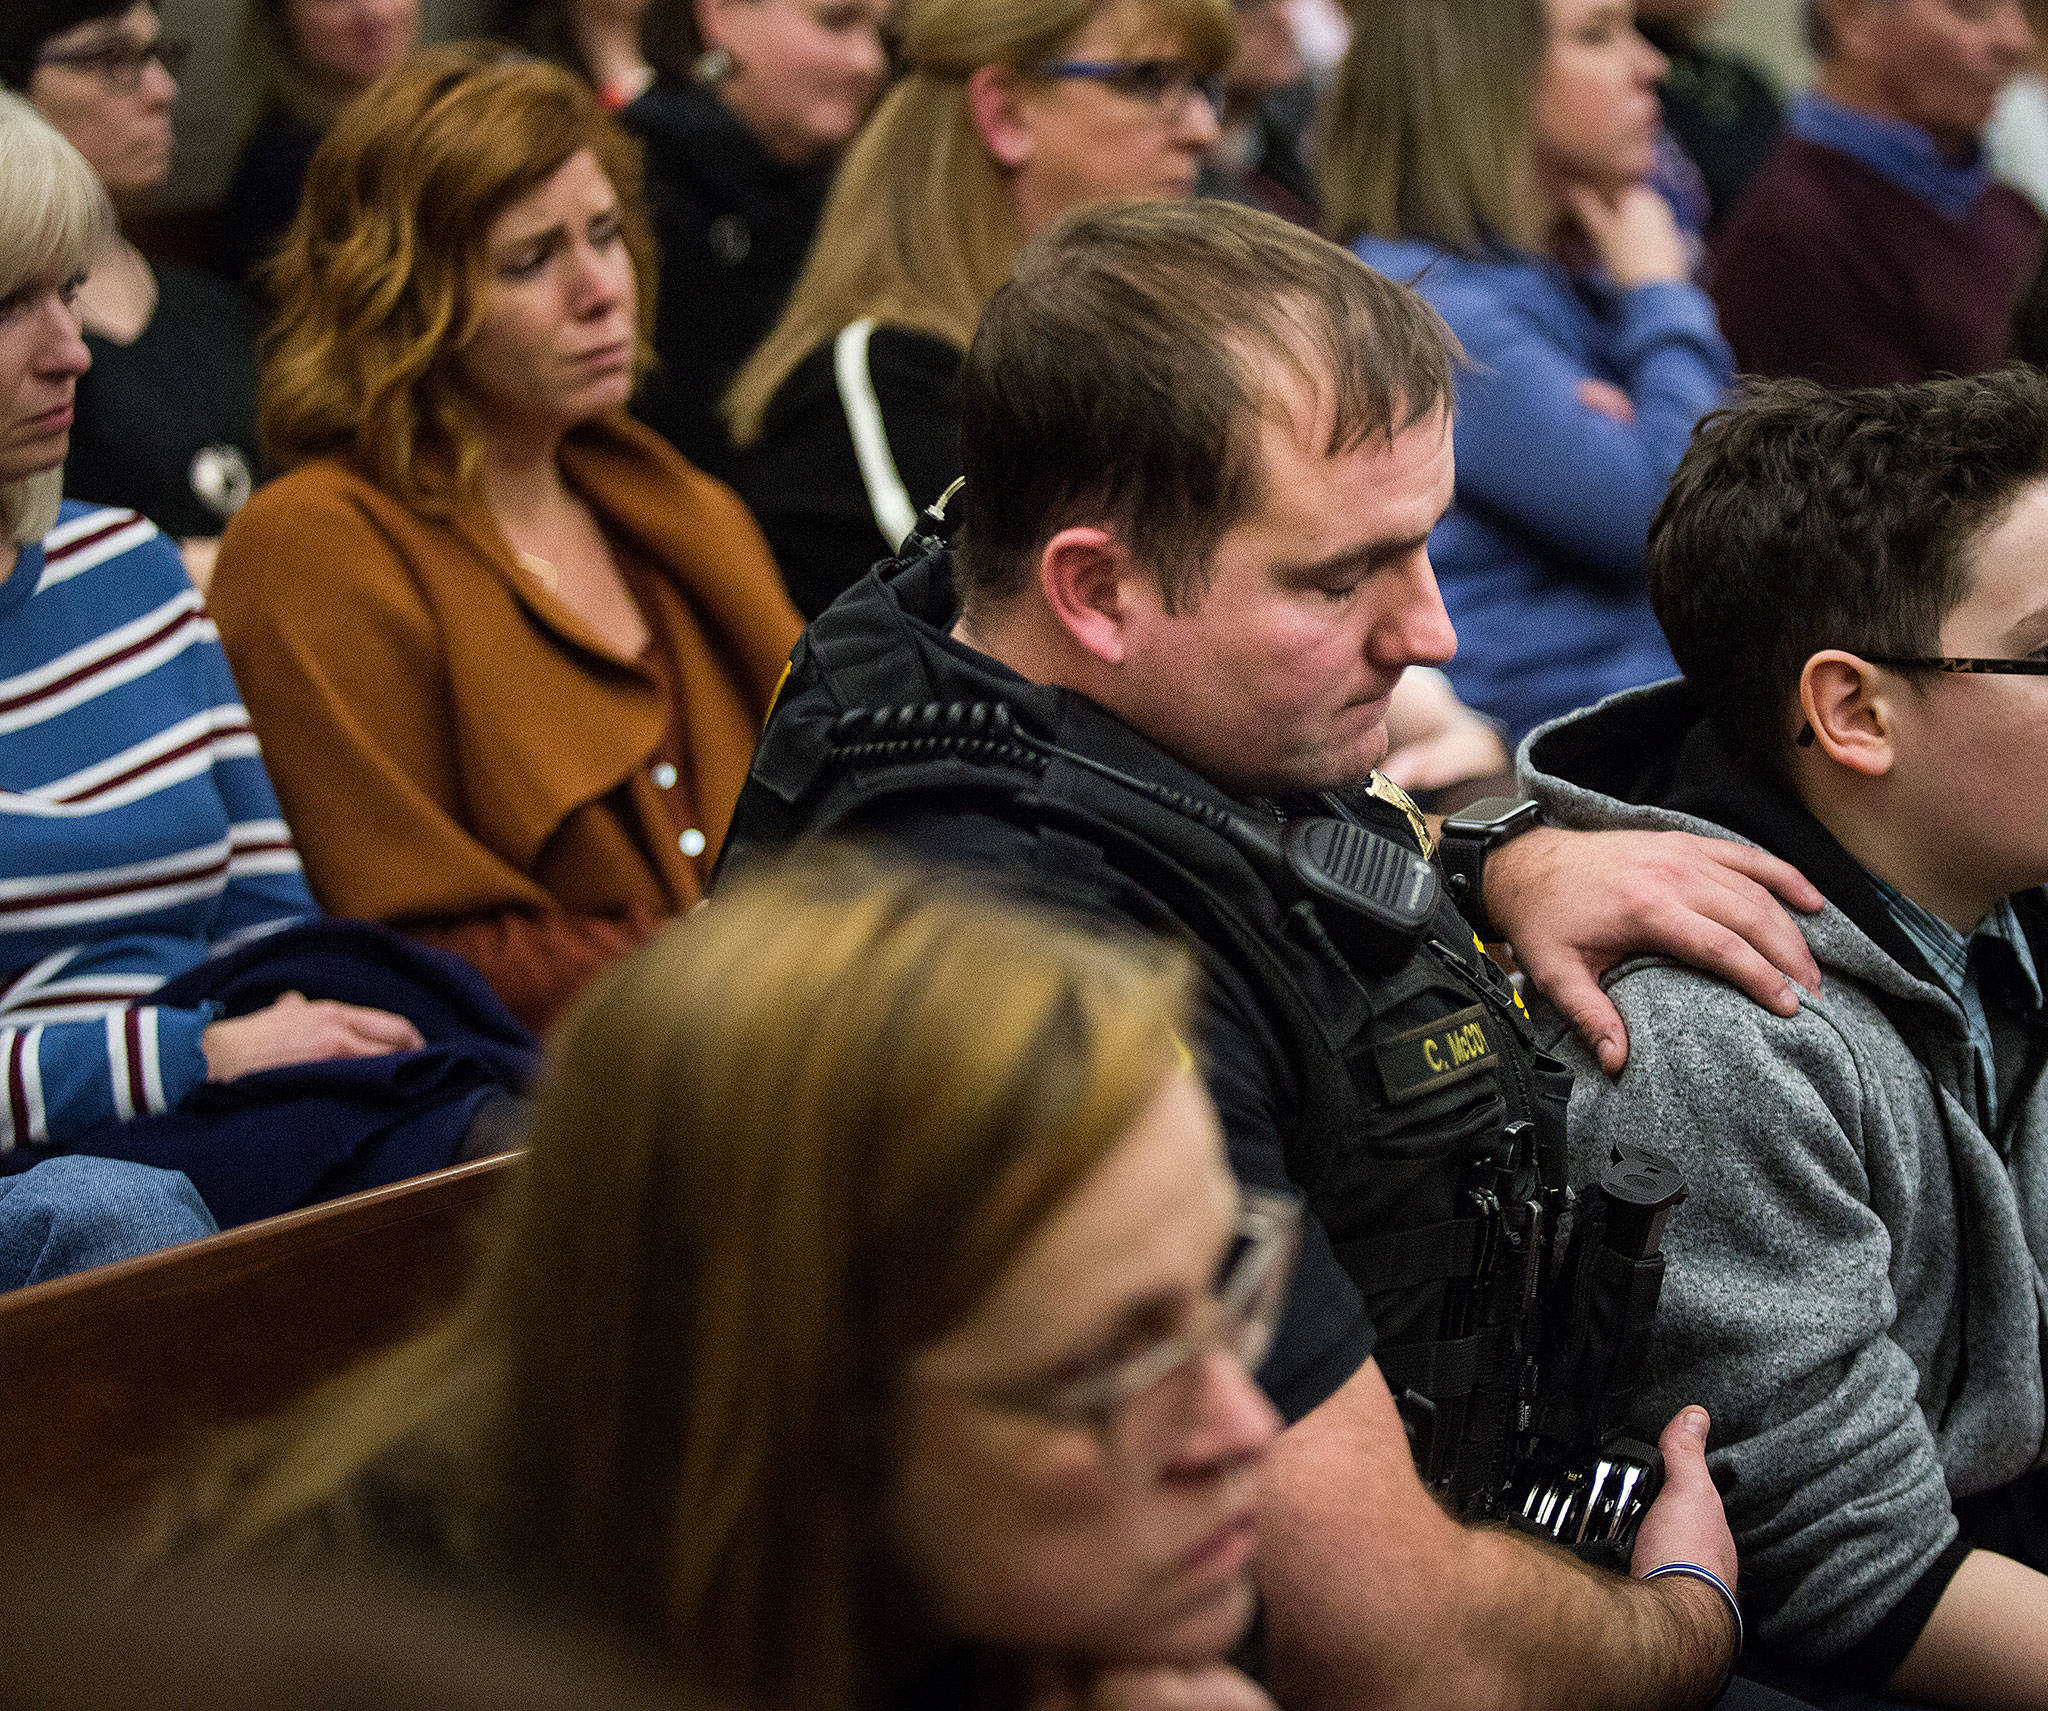 Snohomish County sheriff's deputy Cody McCoy places a hand on the shoulder of the son of Holly Martinez as Paul Martinez is sentenced Monday to 26 years behind bars for the murder of his wife. The sentencing took place at the Snohomish County Courthouse in Everett. (Andy Bronson / The Herald)